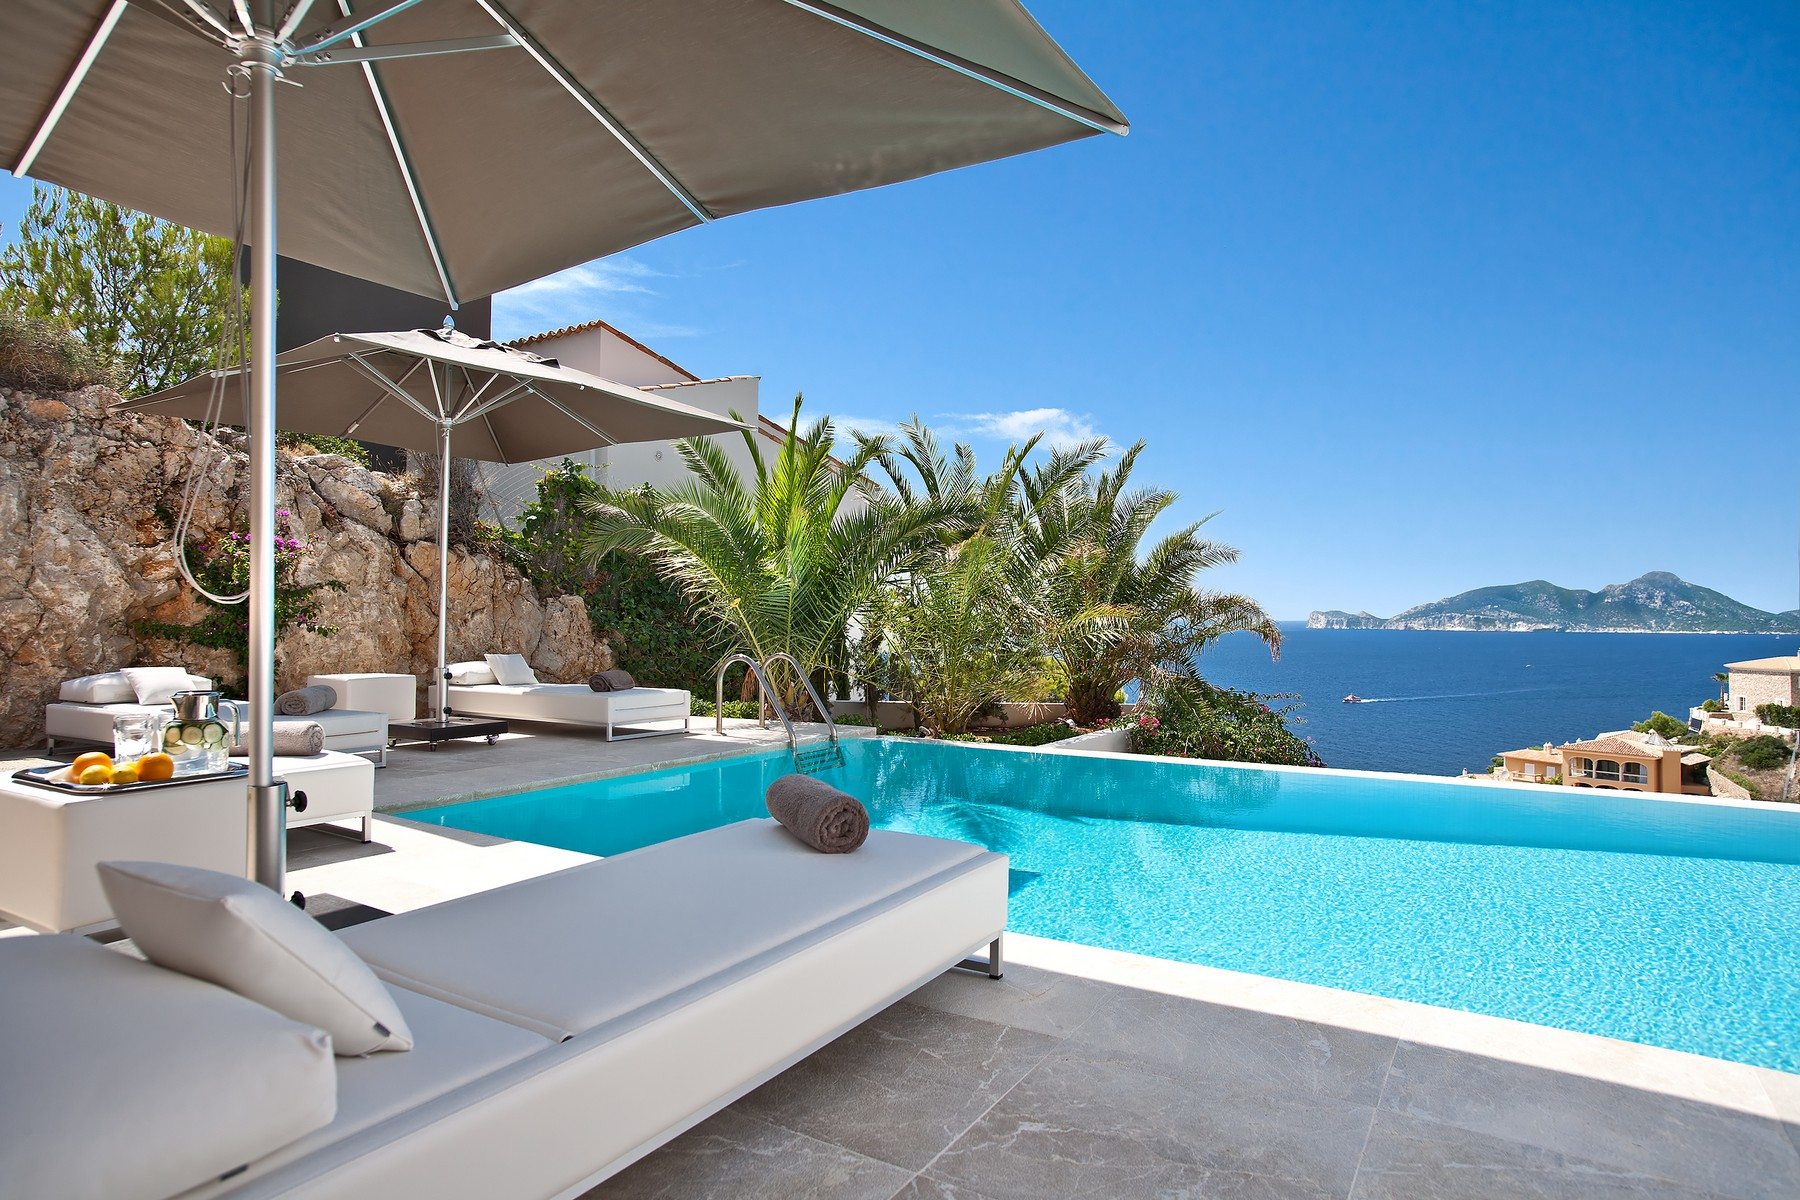 Single Family Home for Sale at Tranquil villa with sea views in Port Andratx Port Andratx, Mallorca 07157 Spain